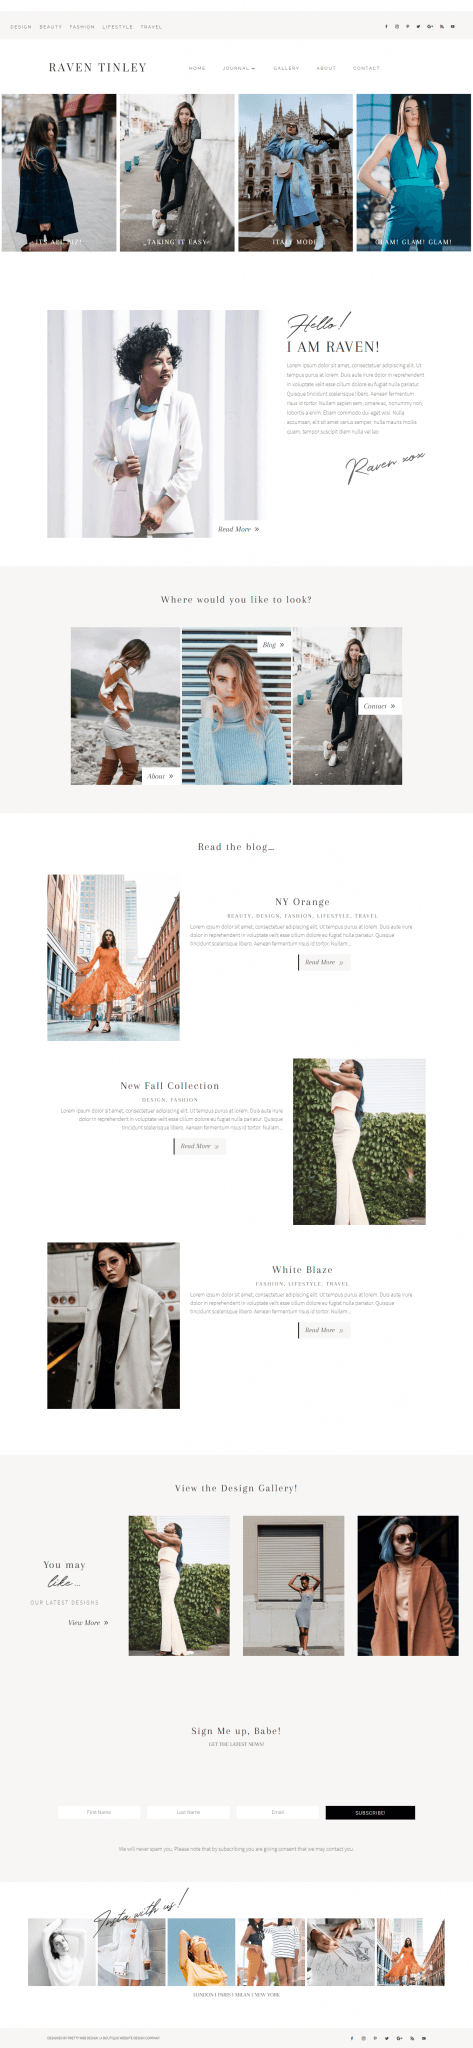 Raven Tinley Divi Fashion Blog theme